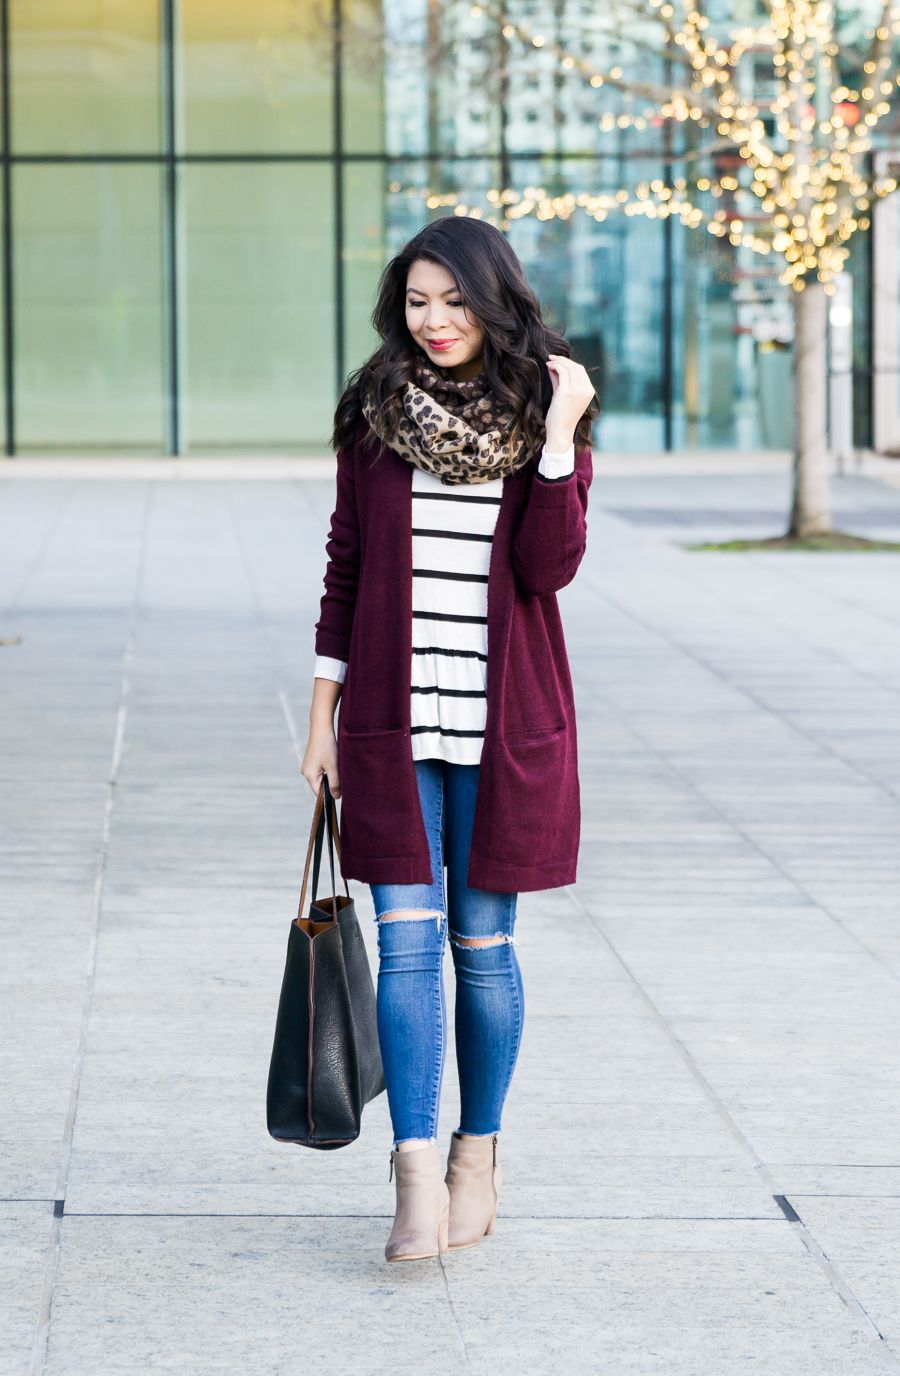 Burgundy Cardigan Outfit + 2017 New Year's Blog ...